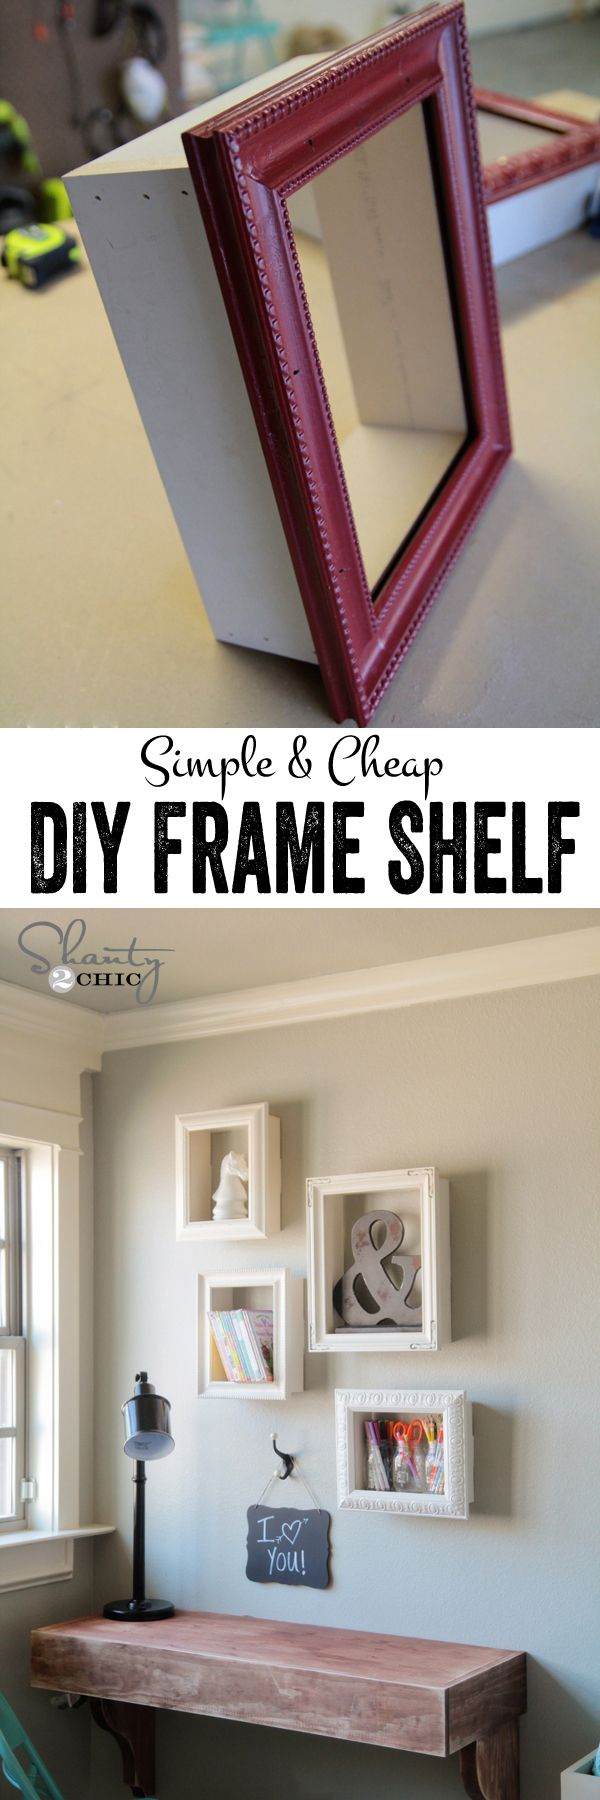 395 best unique framing ideas images on pinterest home ideas diy frame shelves jeuxipadfo Image collections